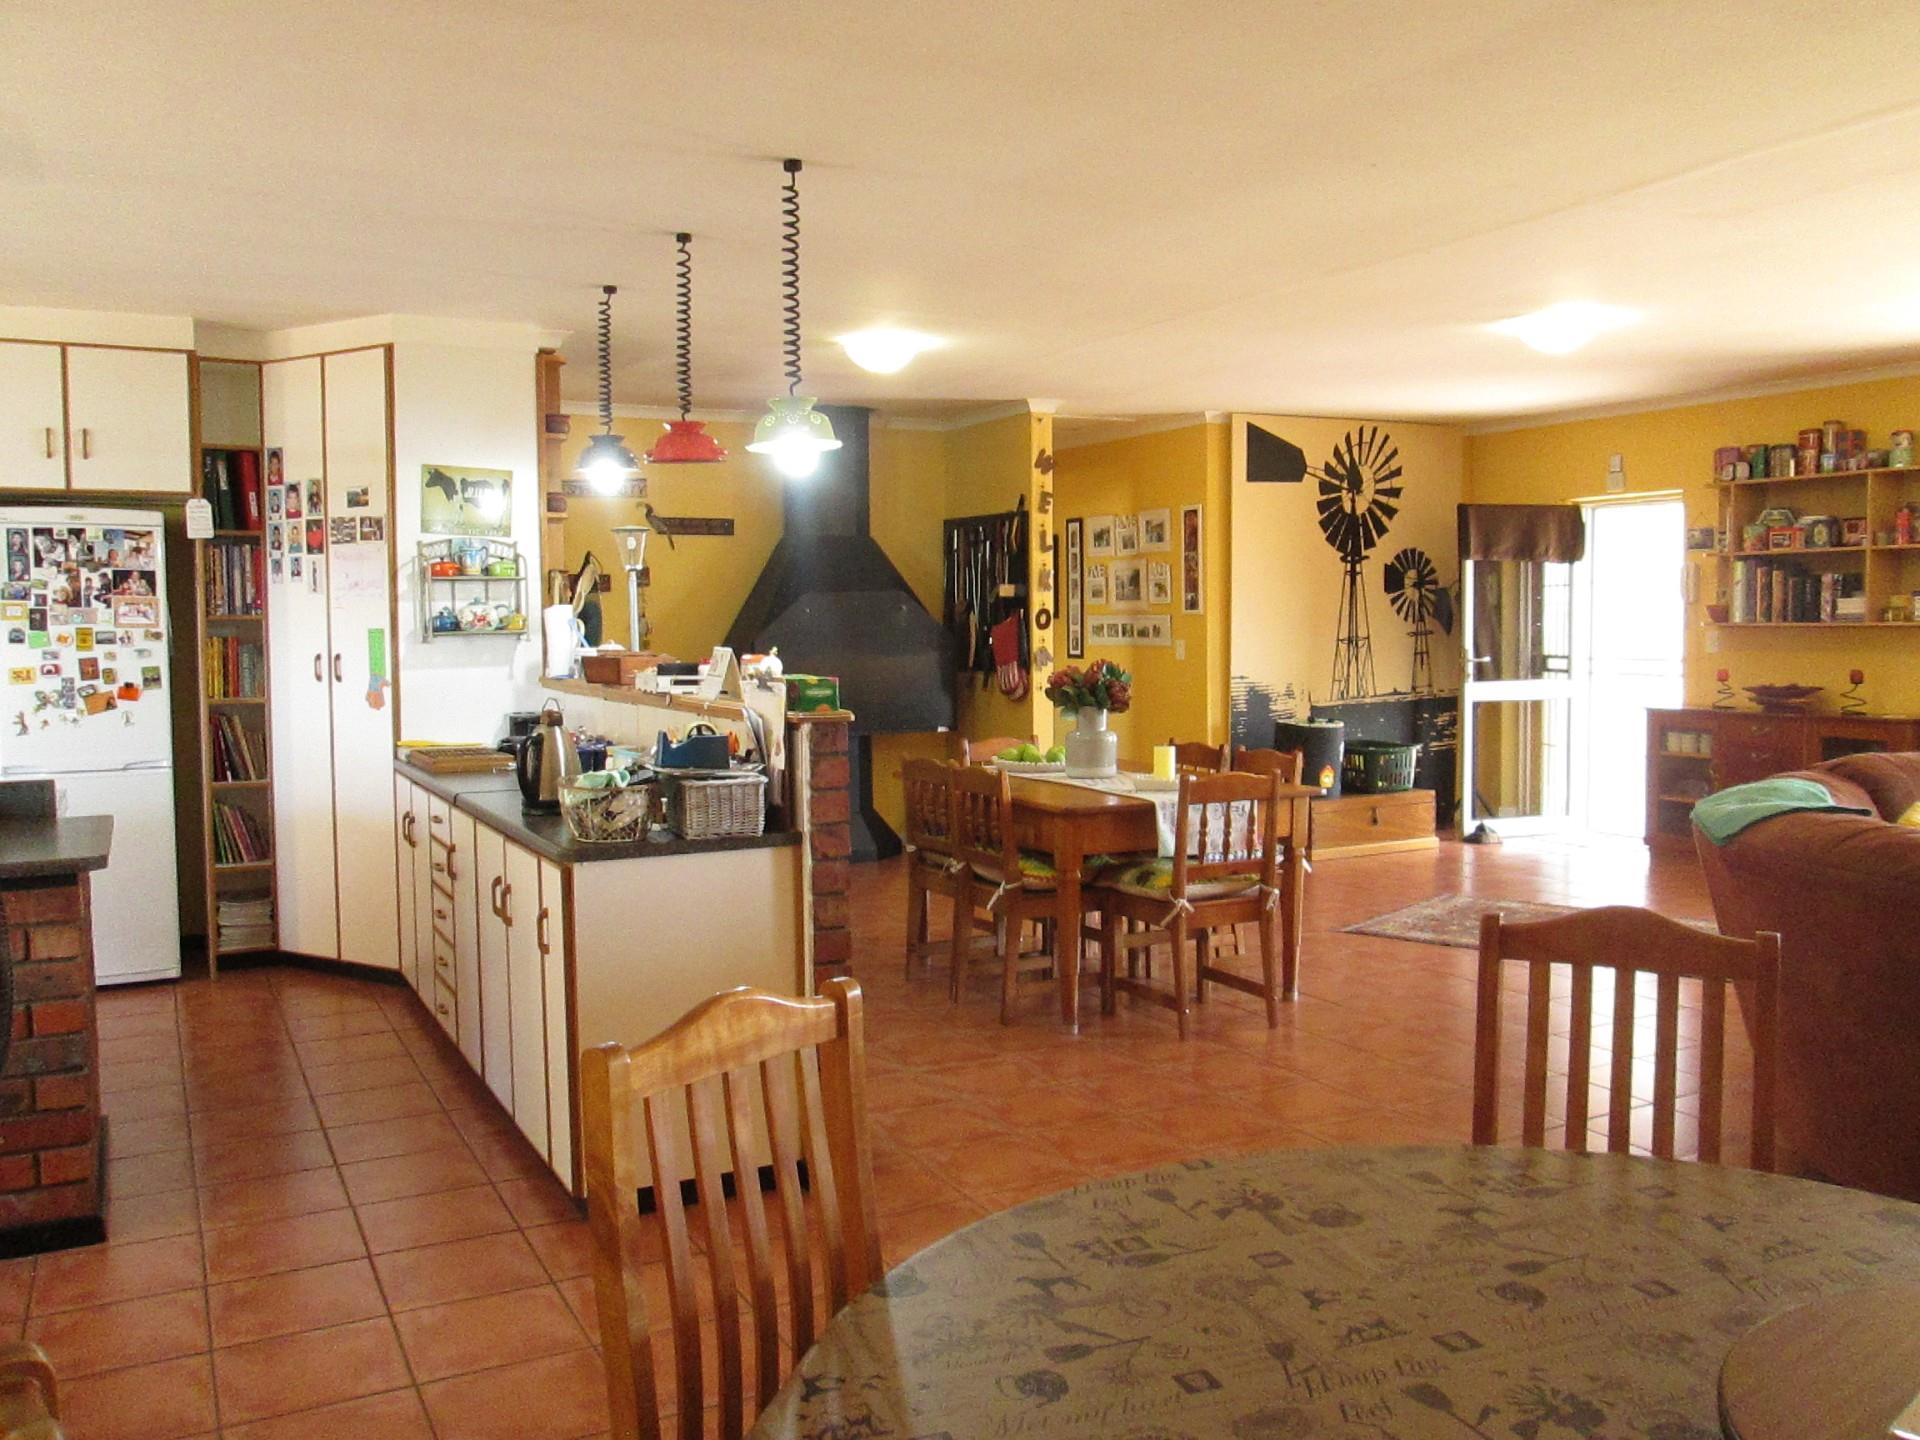 3 Bedroom House For Sale in Piketberg